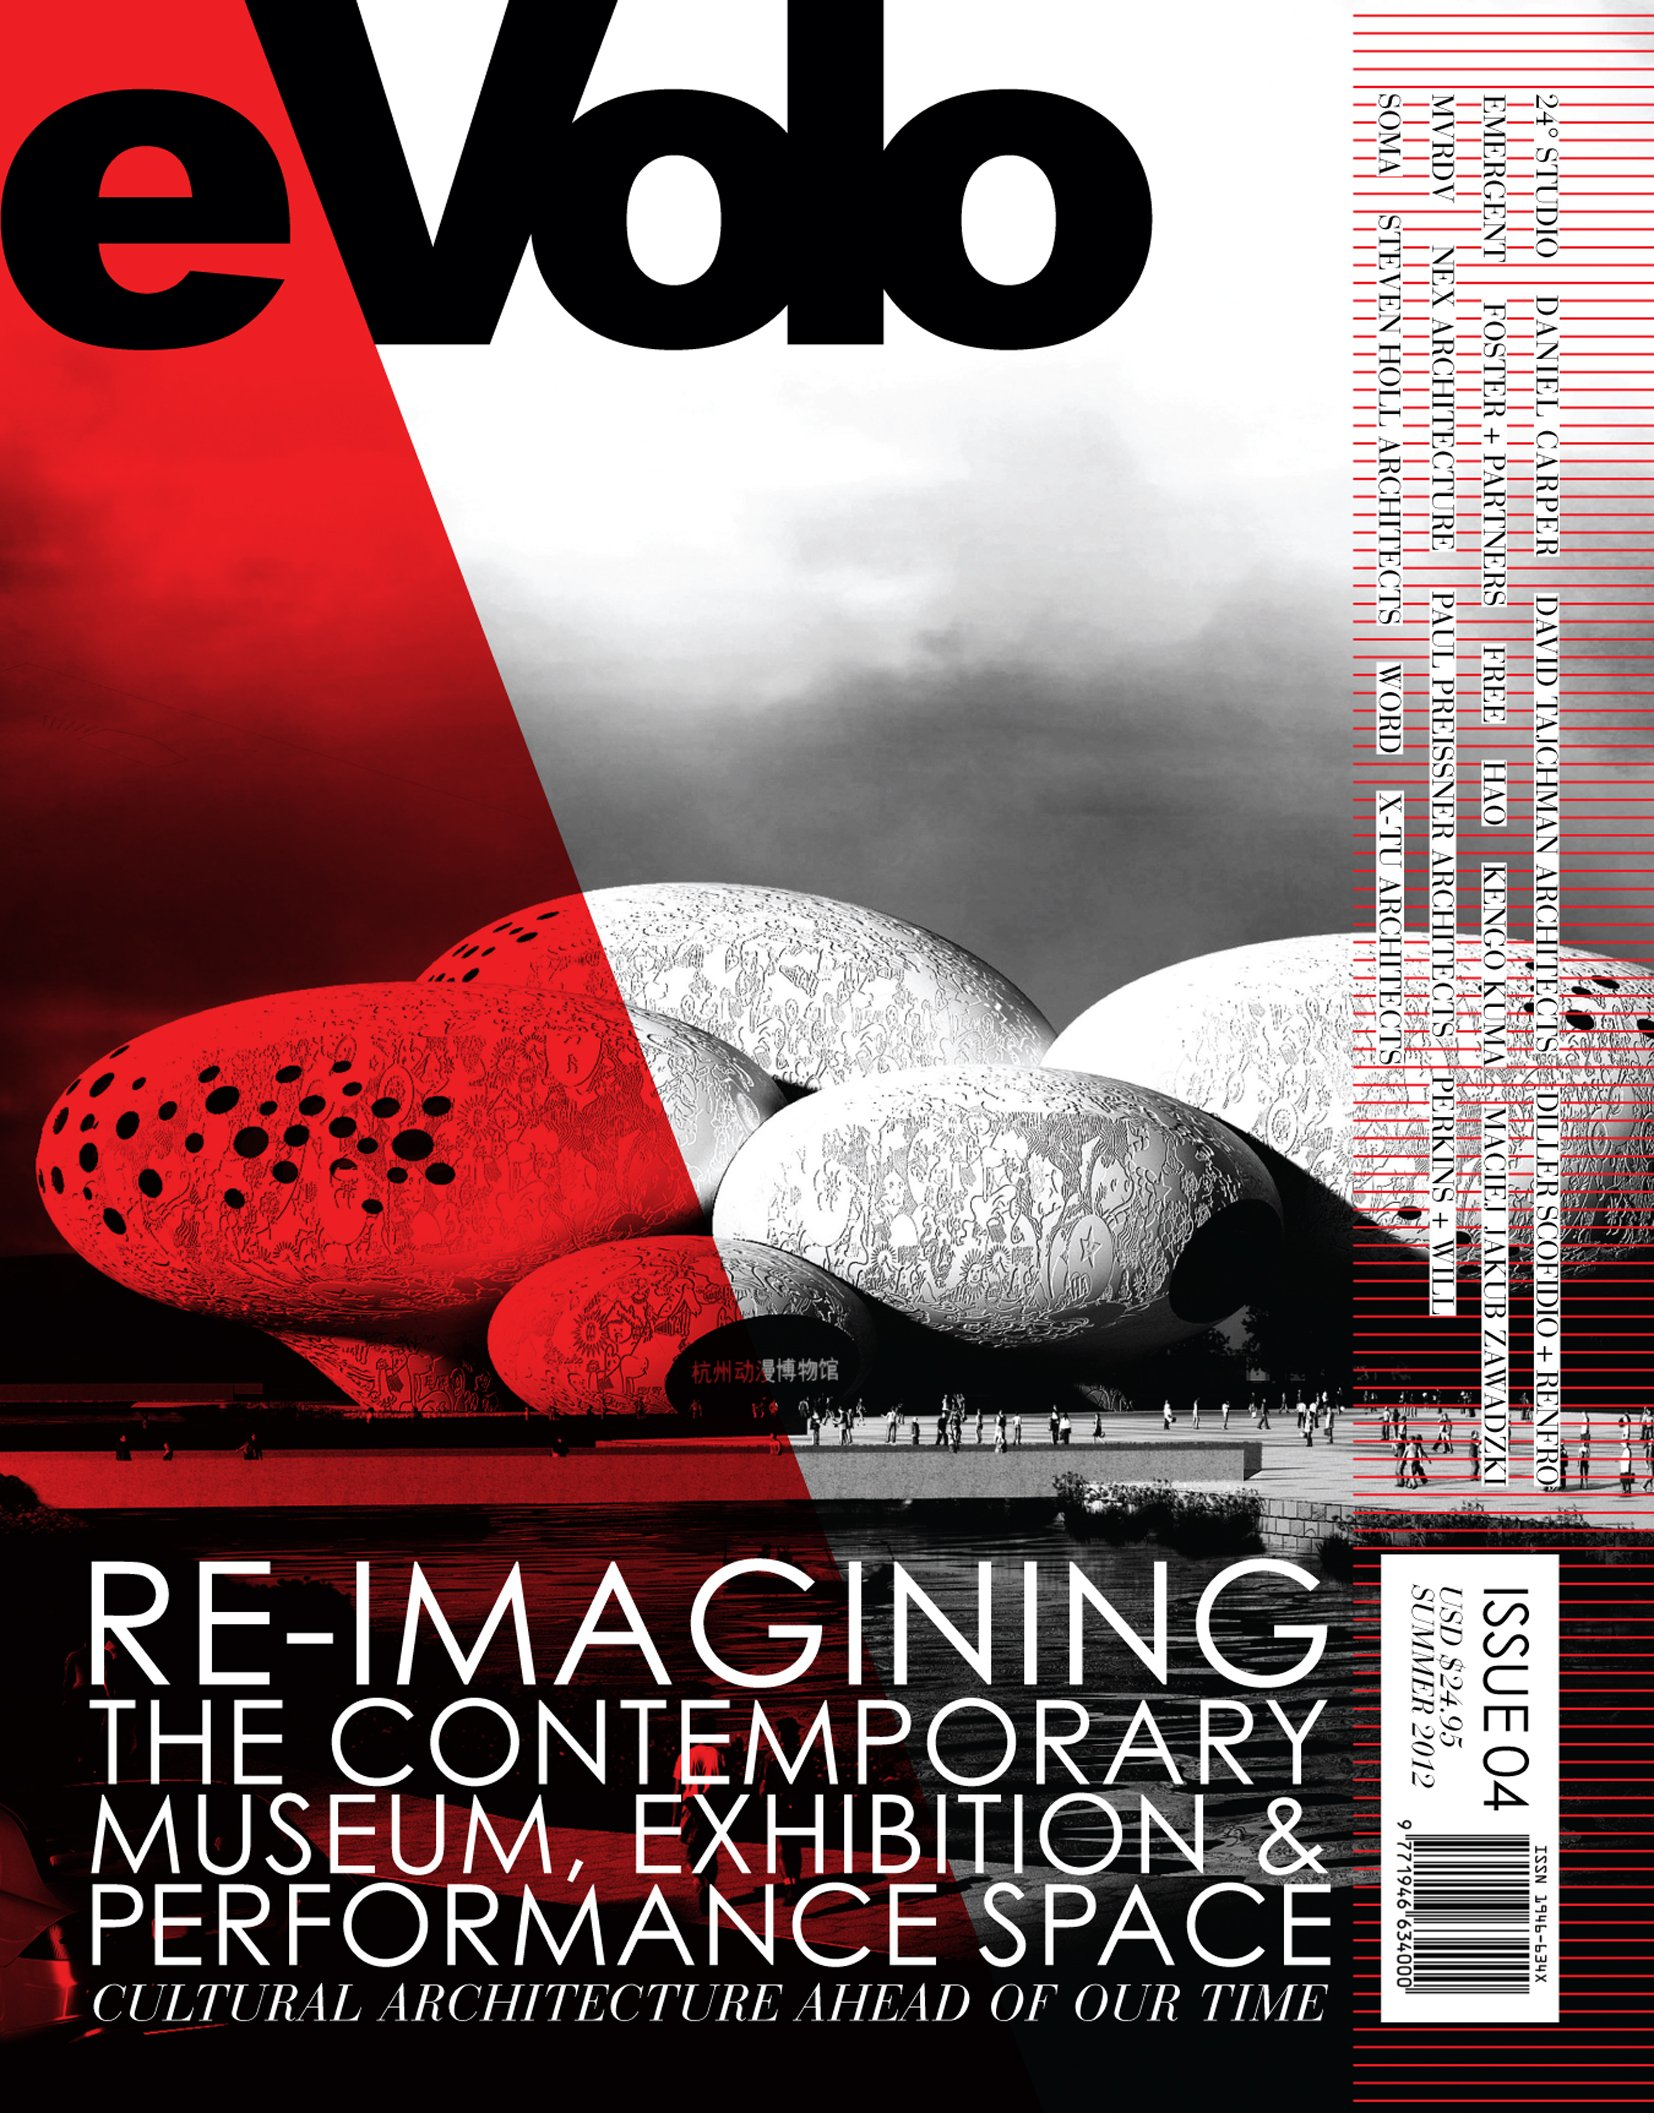 eVolo 04 (Summer 2012): Re-imagining the Contemporary Museum, Exhibition and Performance Space: Cultural Architecture Ahead of Our Time